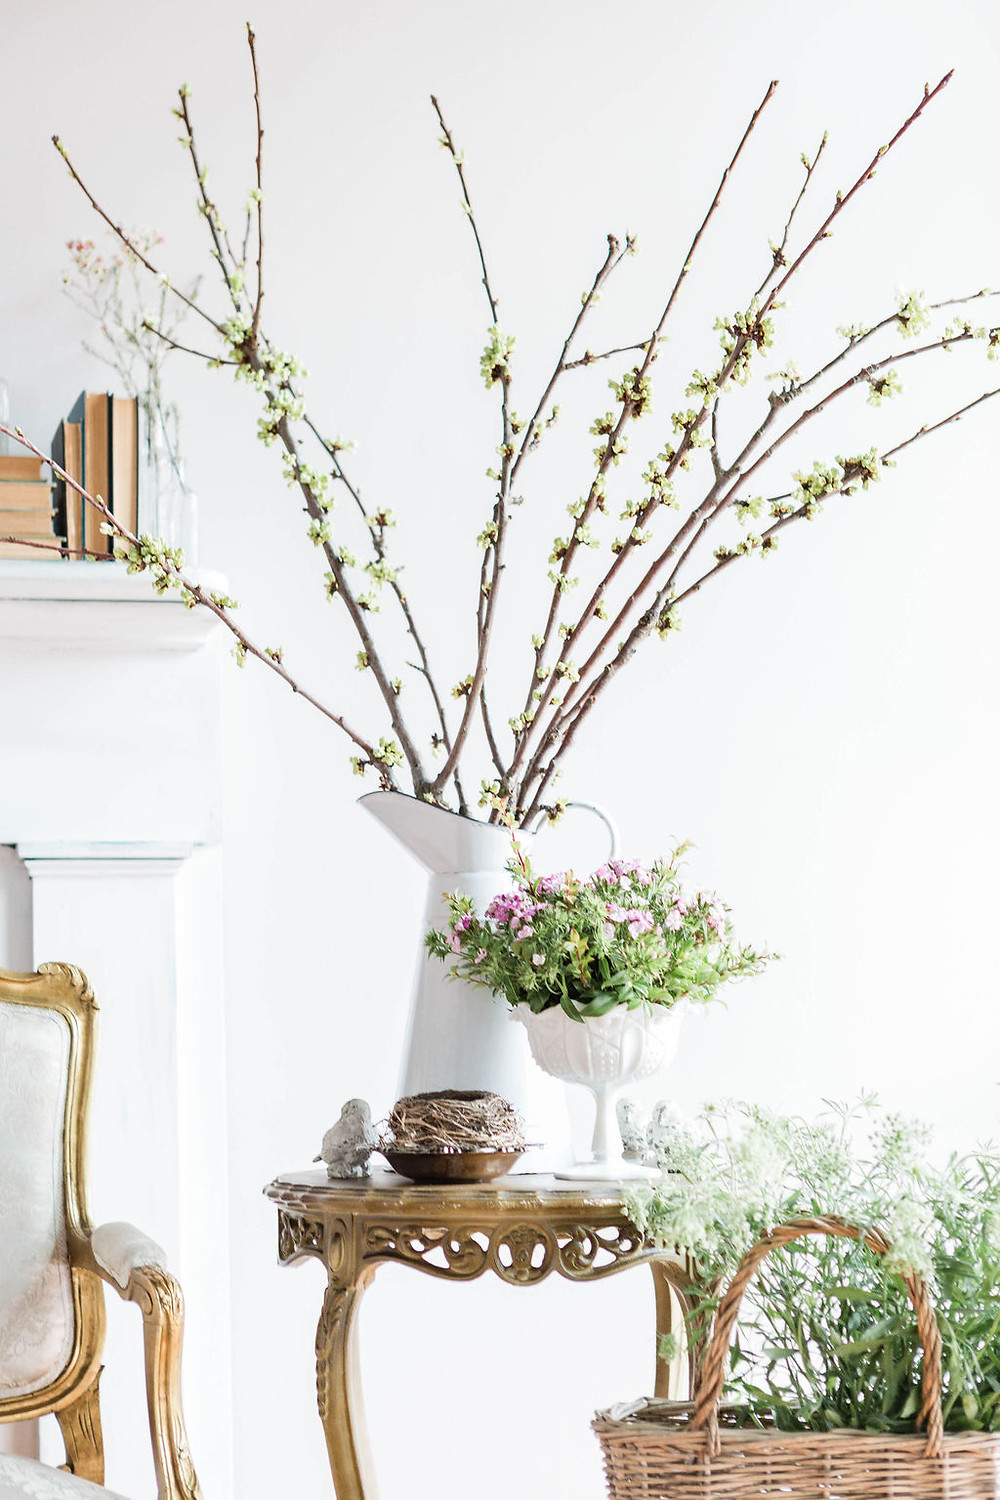 Buds and blossoms signaling springtime, along with a fallen bird nest and stone birds create a simple vignette